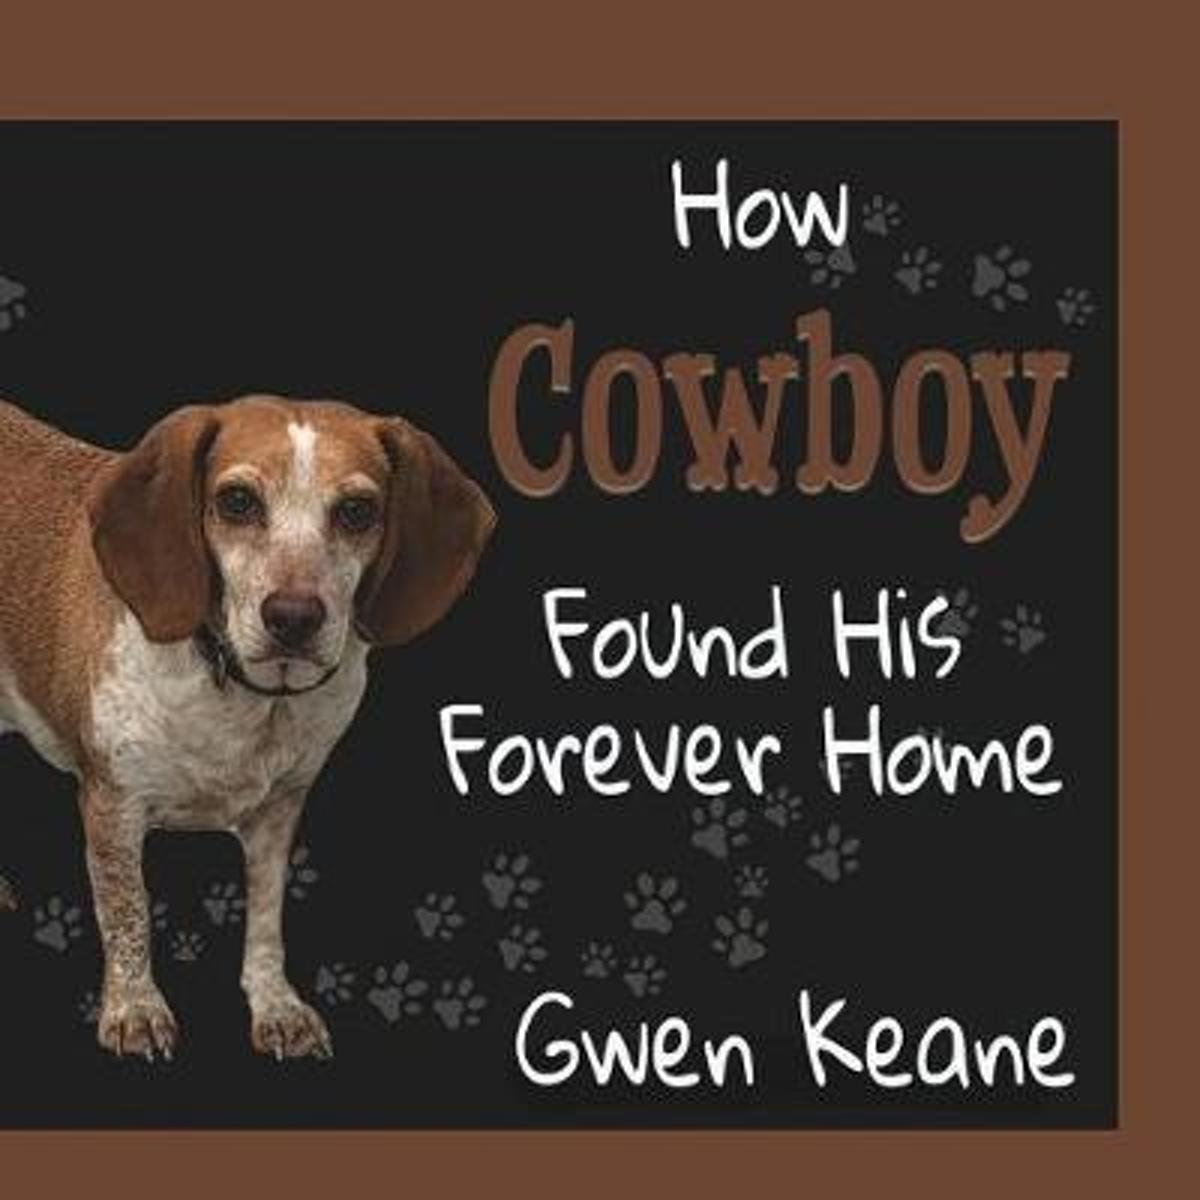 How Cowboy Found His Forever Home